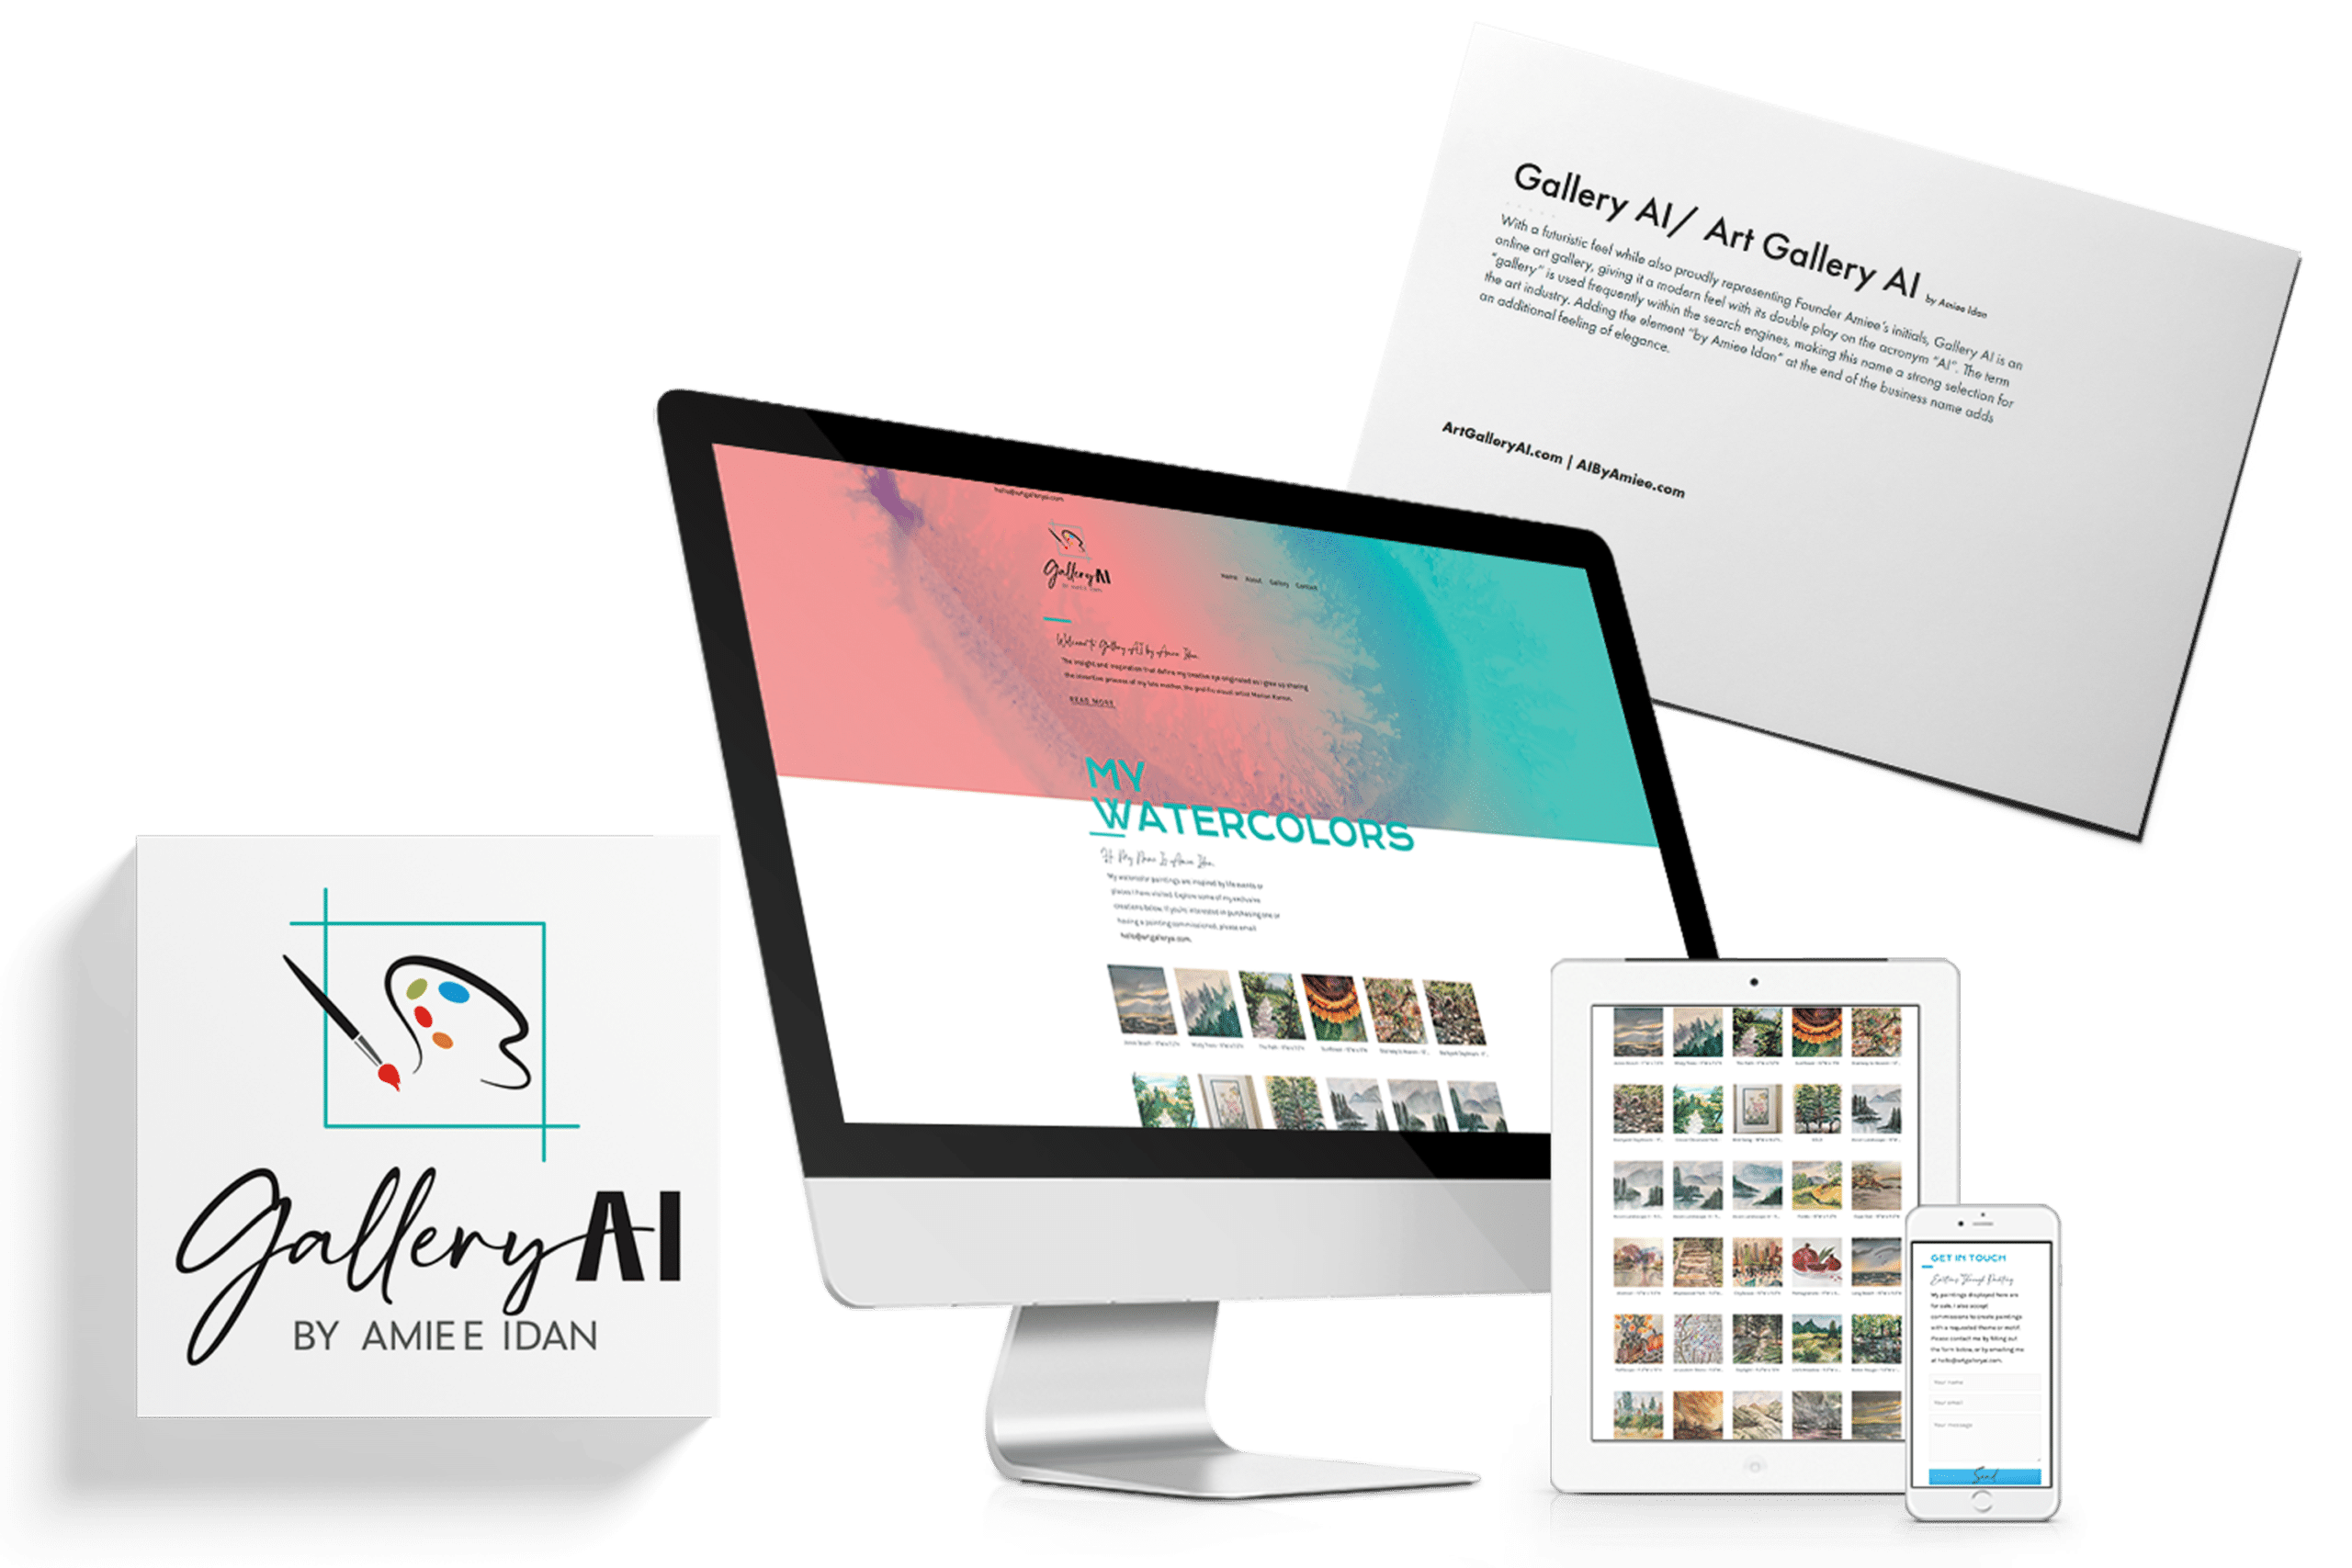 Gallery_AI_Logo+iMac+iPad+Mobile+Naming_Mockup